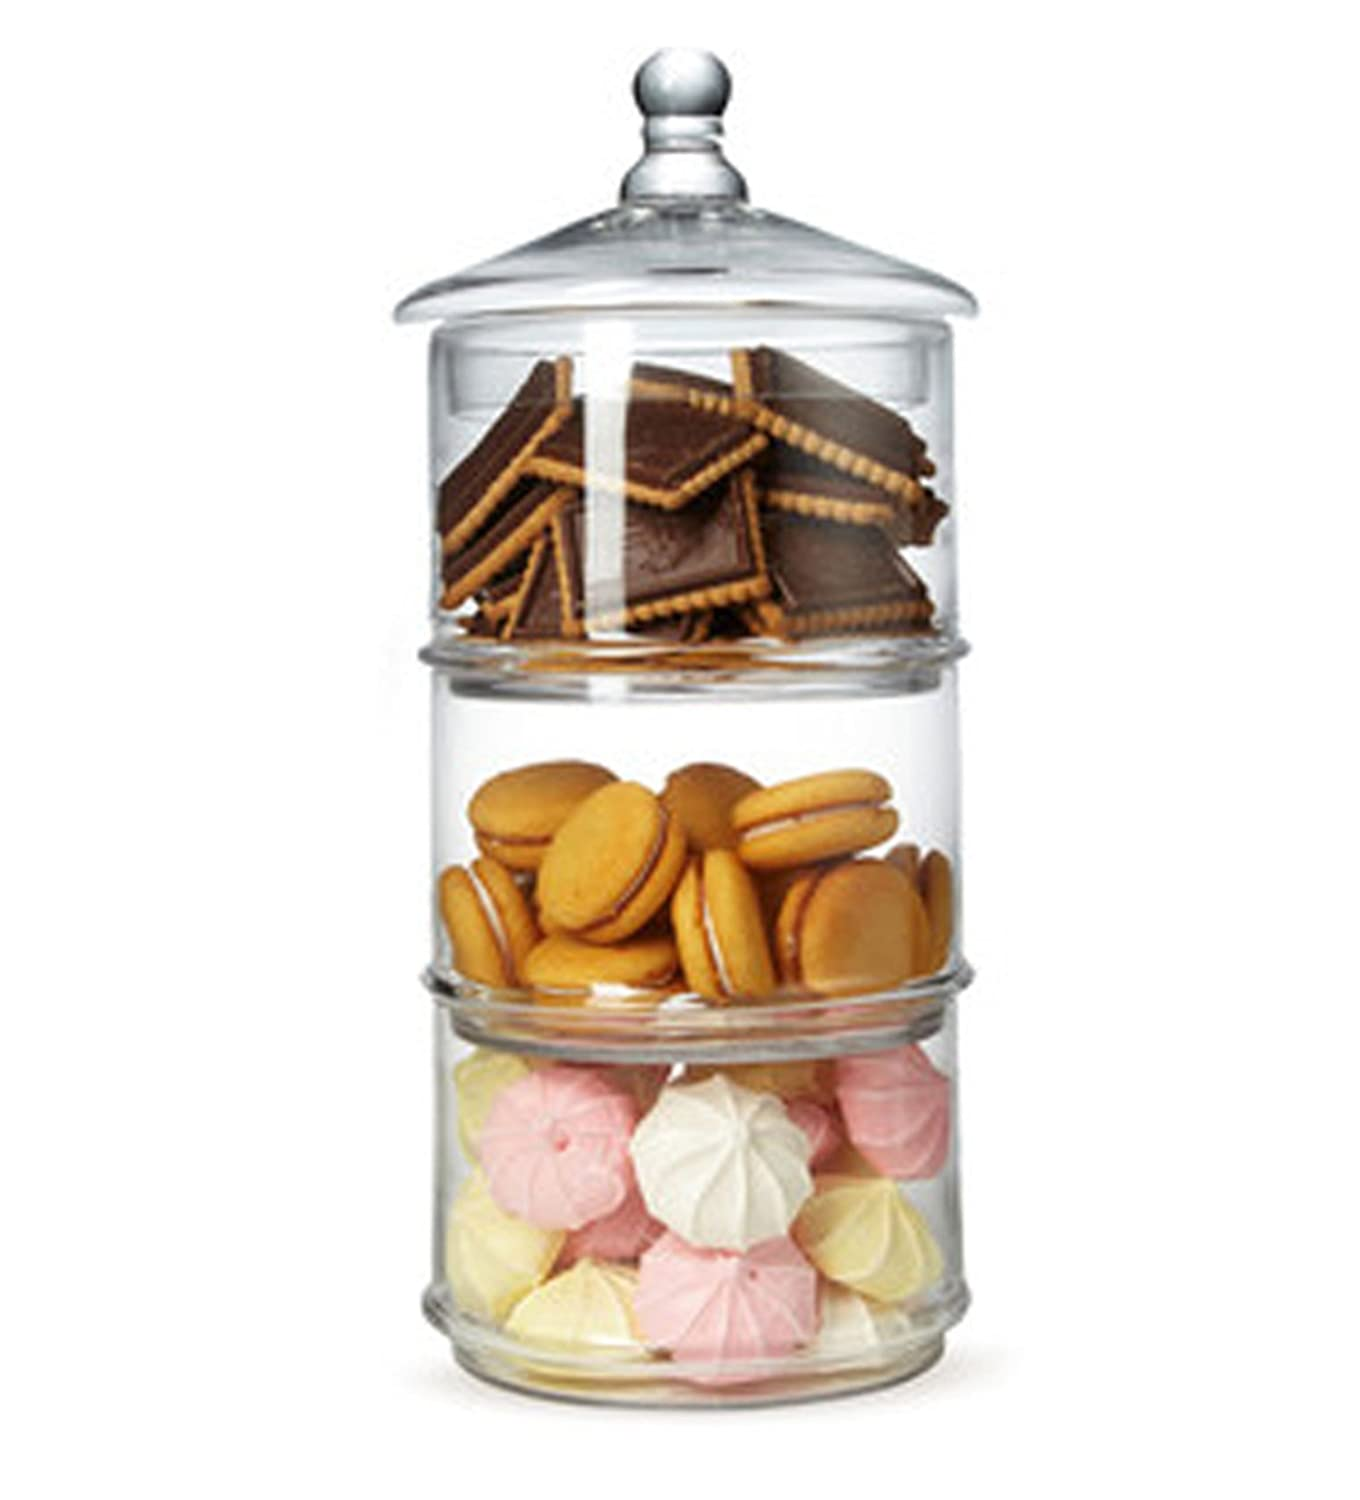 Amazon.com: MyGift 16 inch 3 Tier Stacking Apothecary Jars, Round ...